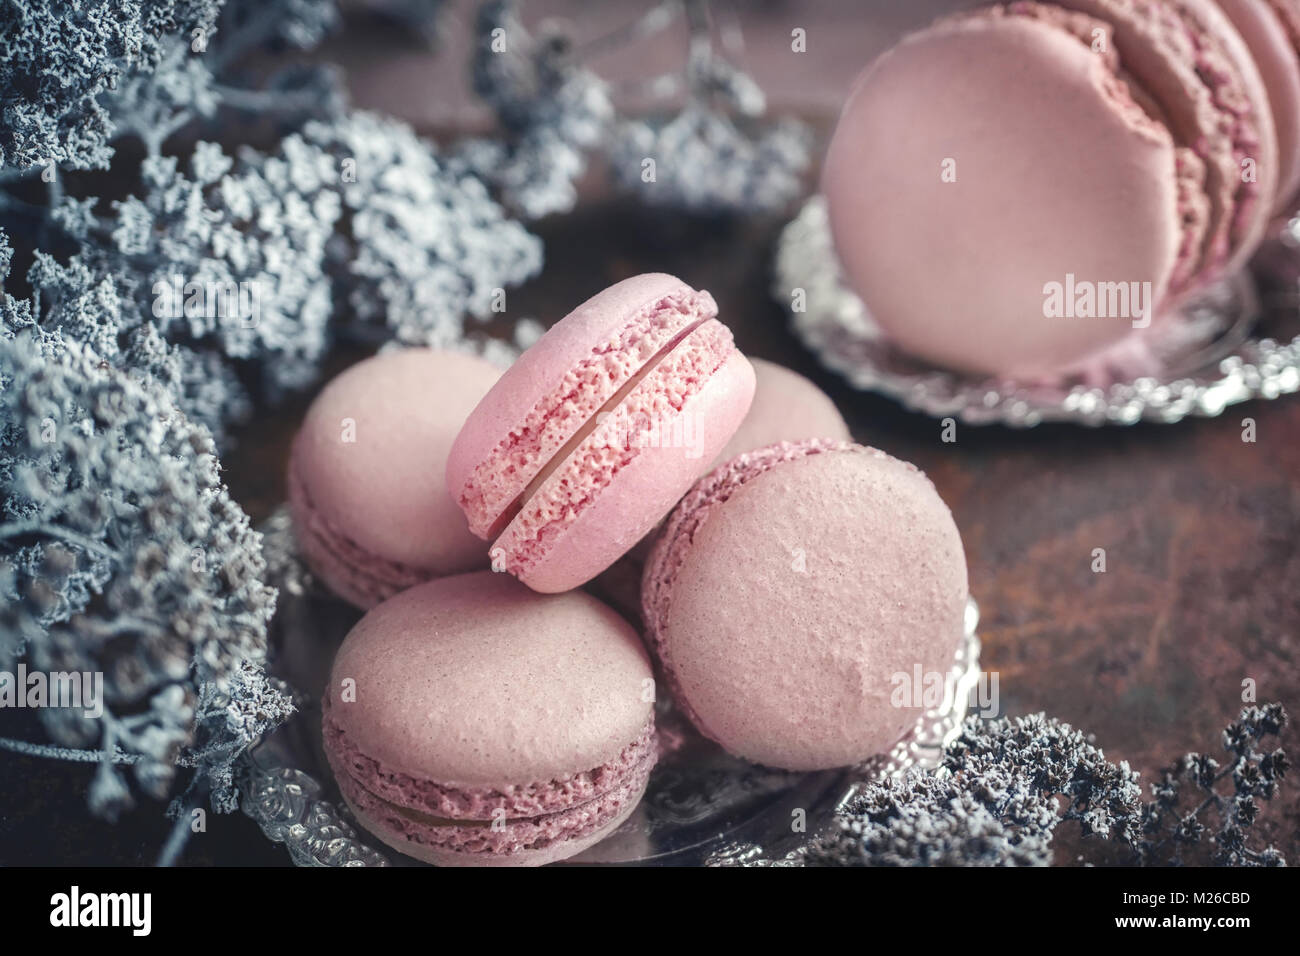 Freshly baked macaroons on metal plate with small white flowers on wooden background. Selective focus. - Stock Image